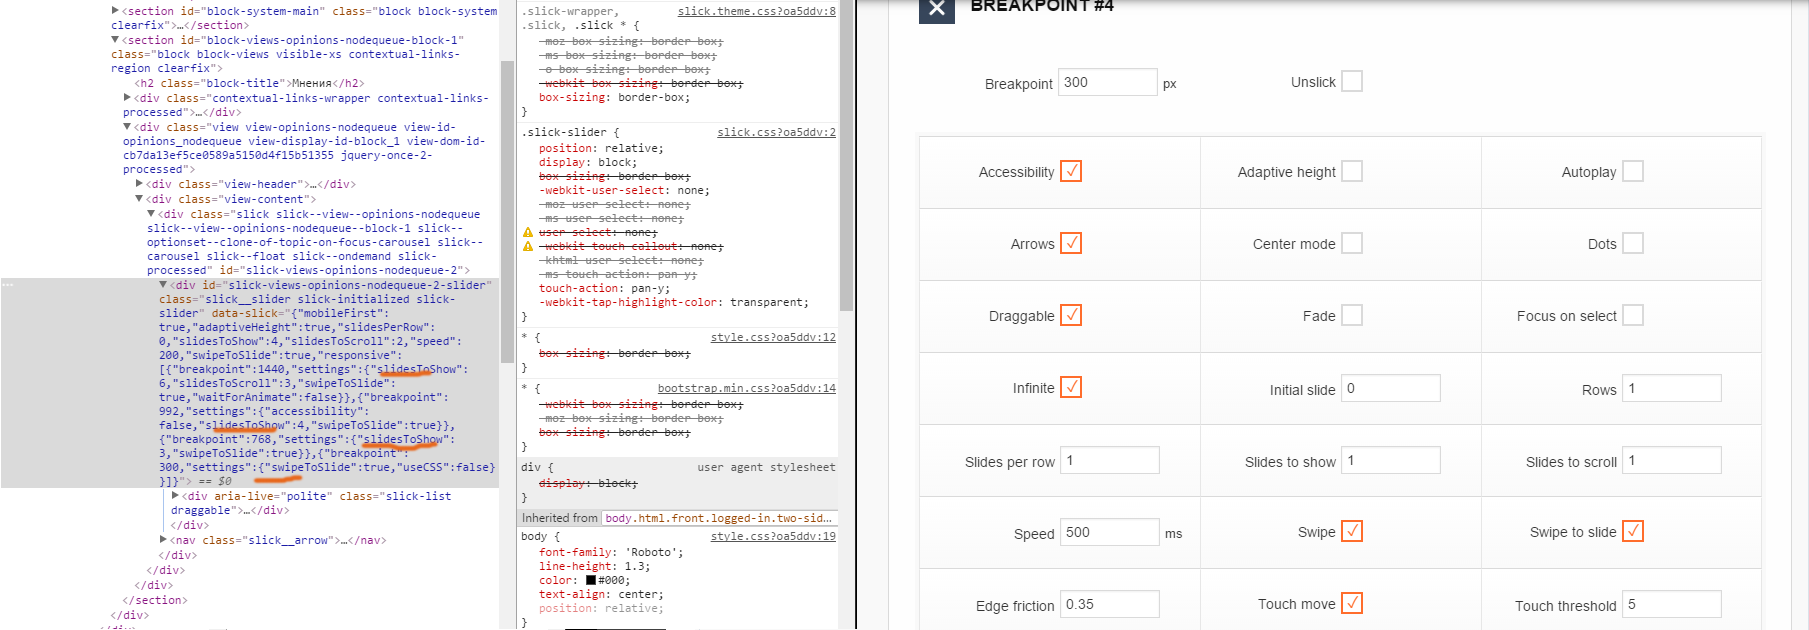 Responsive breakpoints not working properly [#2764631